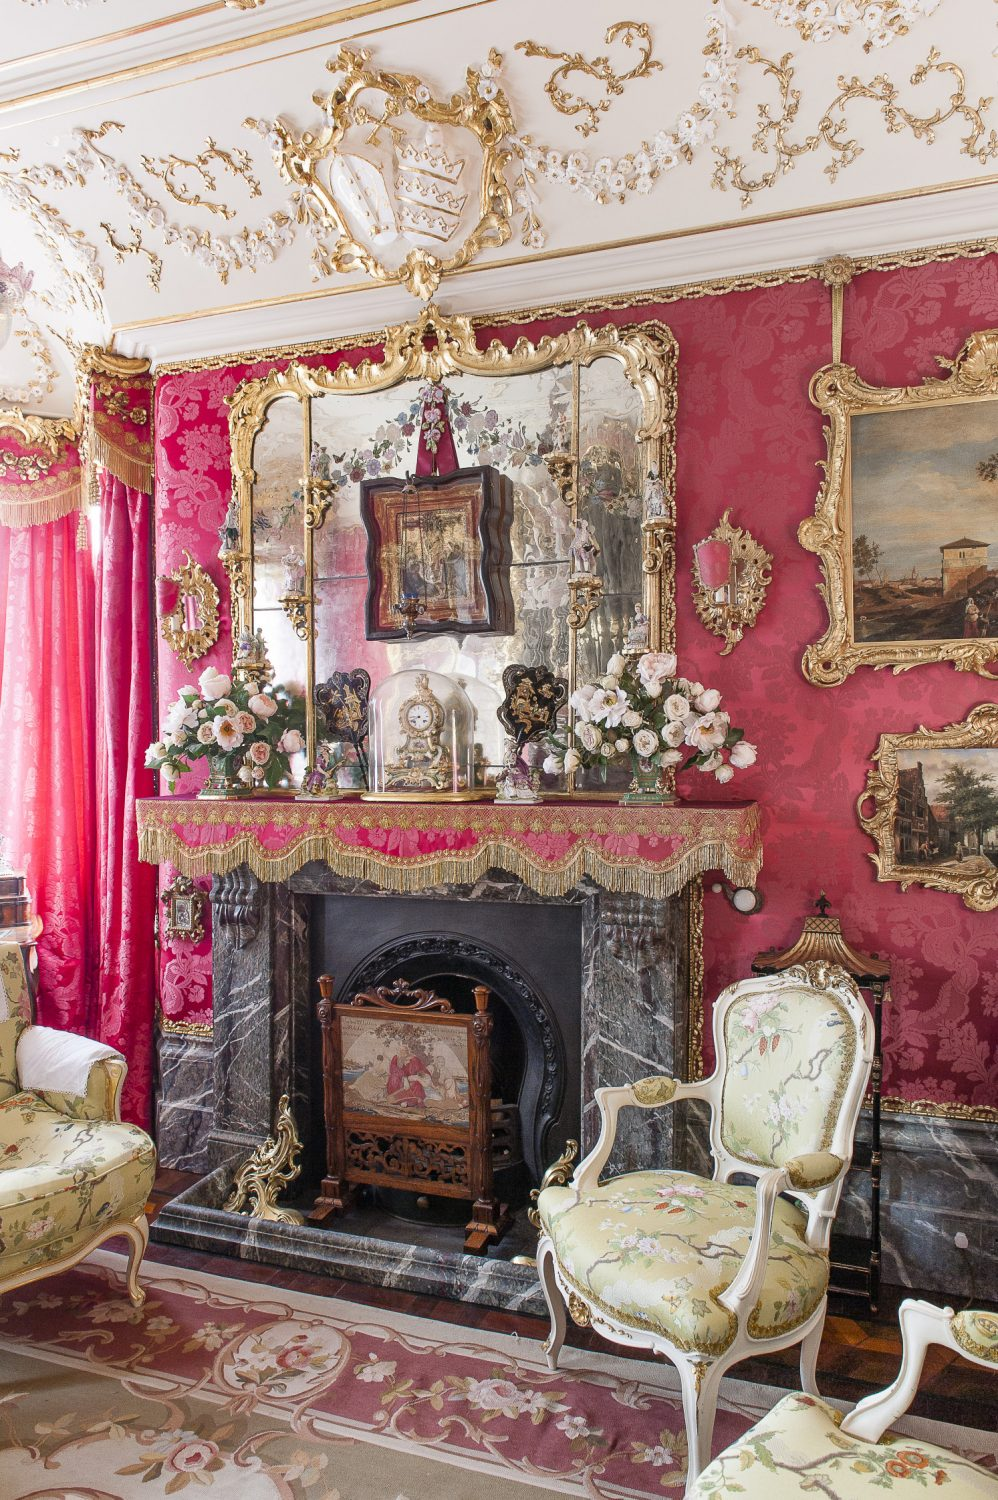 the music room, a rather playful swerve back to 18th century baroque, with fauteuil chairs